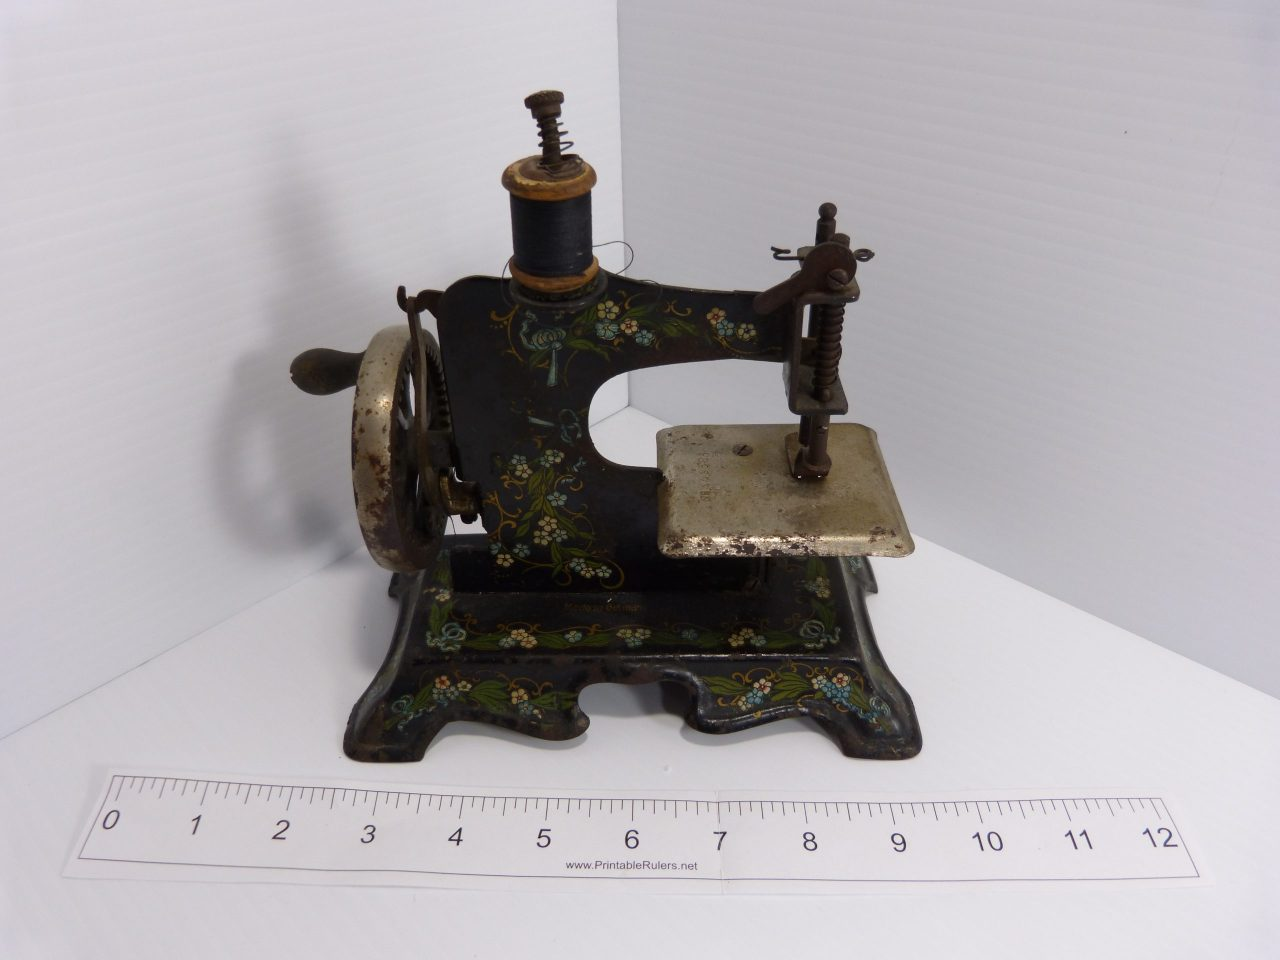 Lindstrom Little Miss + 2 Unbranded Antique Toy Sewing Machines